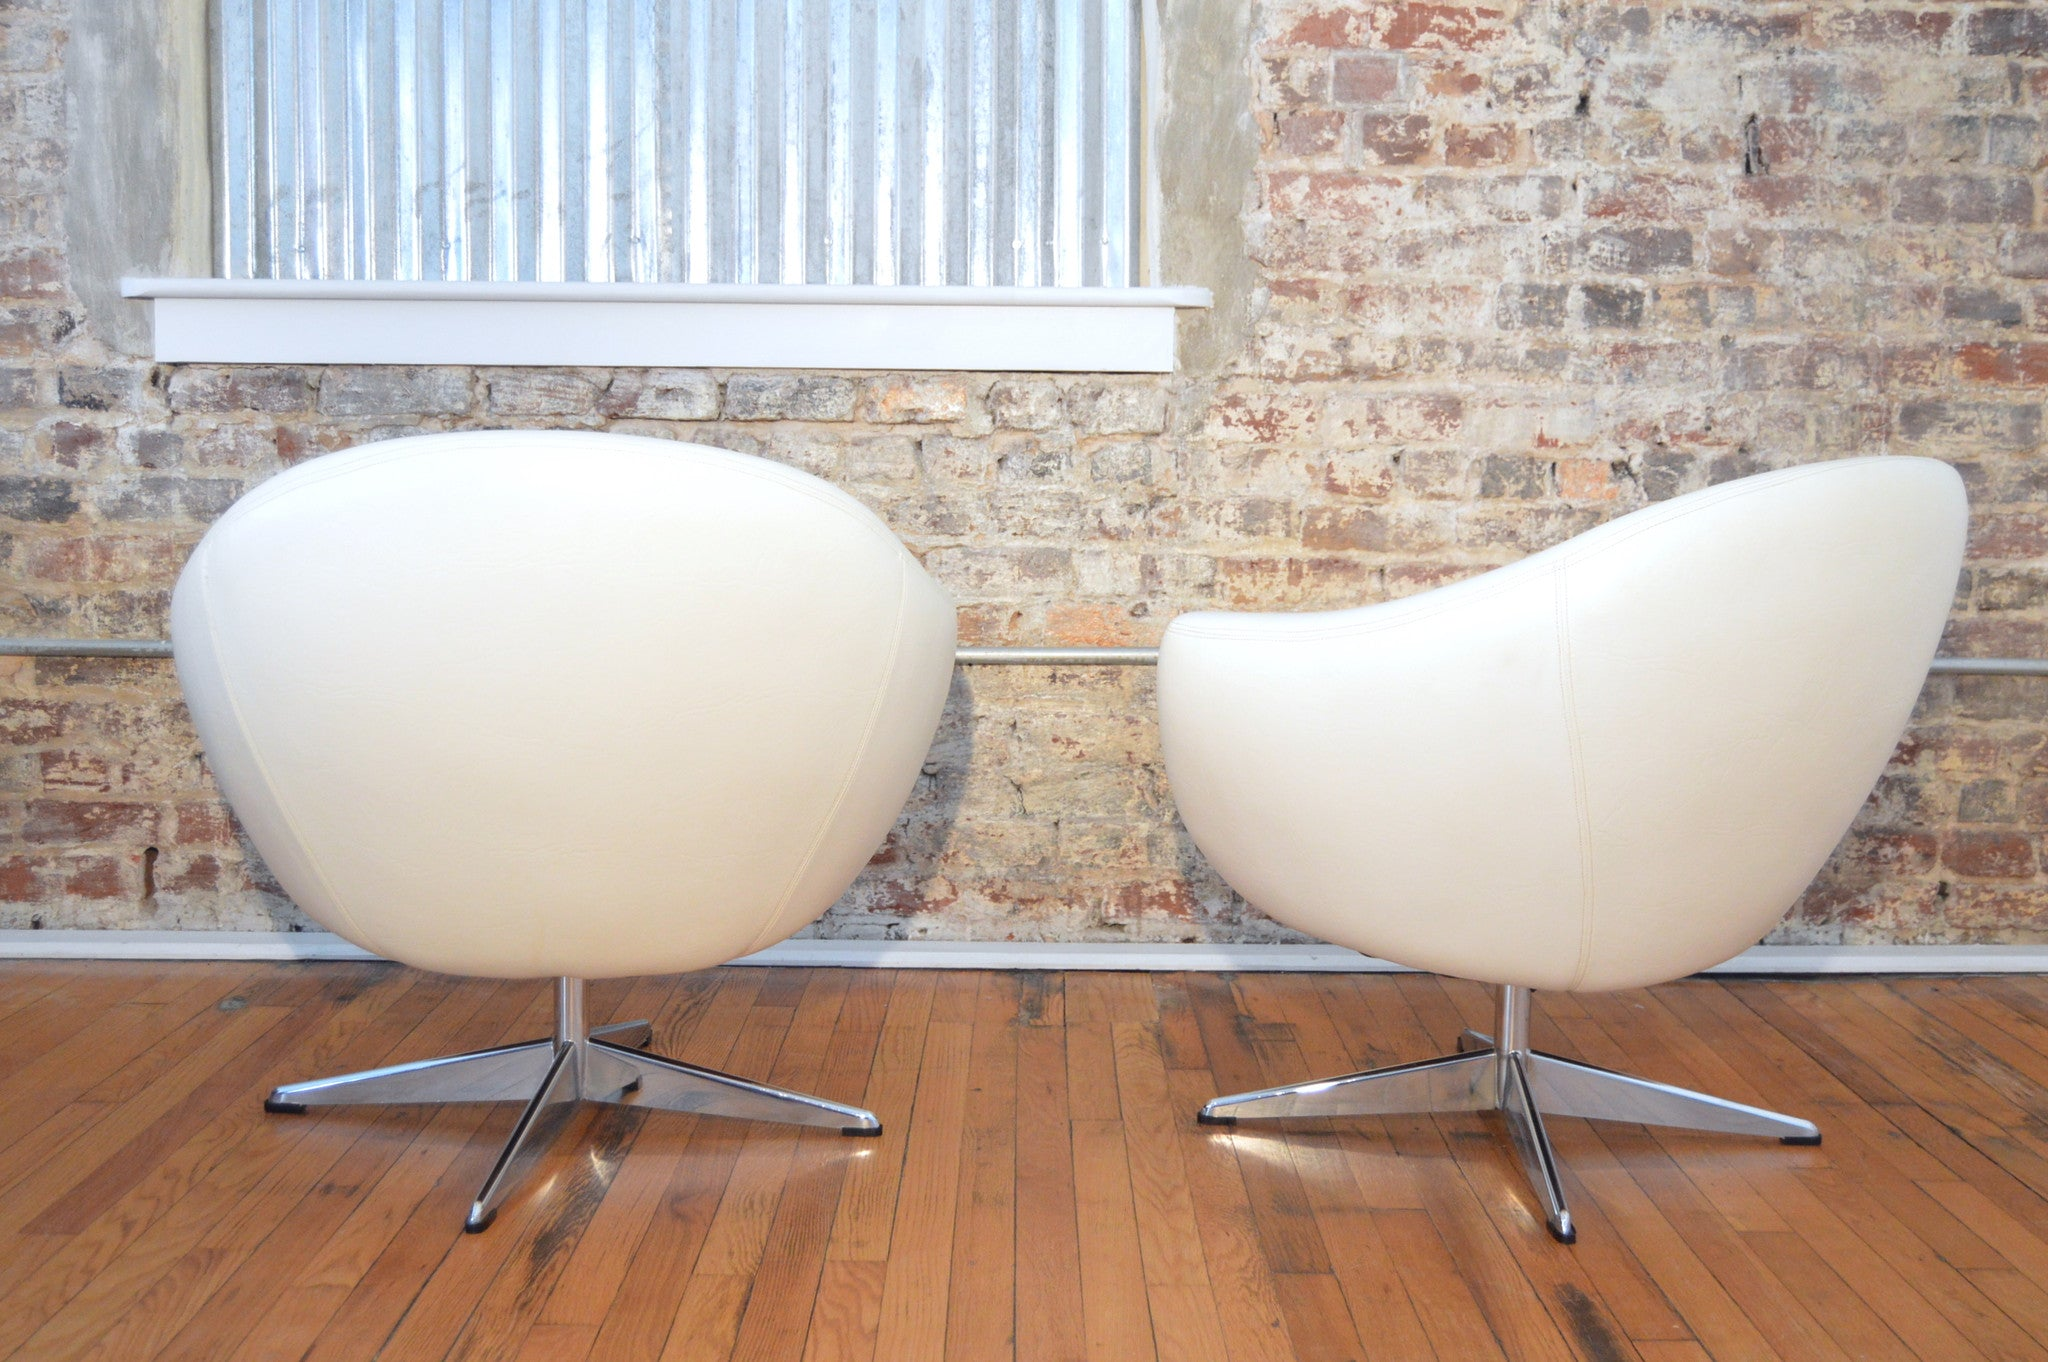 vtg 1940 50s simmons furniture metal medical. Mid Century Modern Space Age White Tub Chairs By Overman Vtg 1940 50s Simmons Furniture Metal Medical